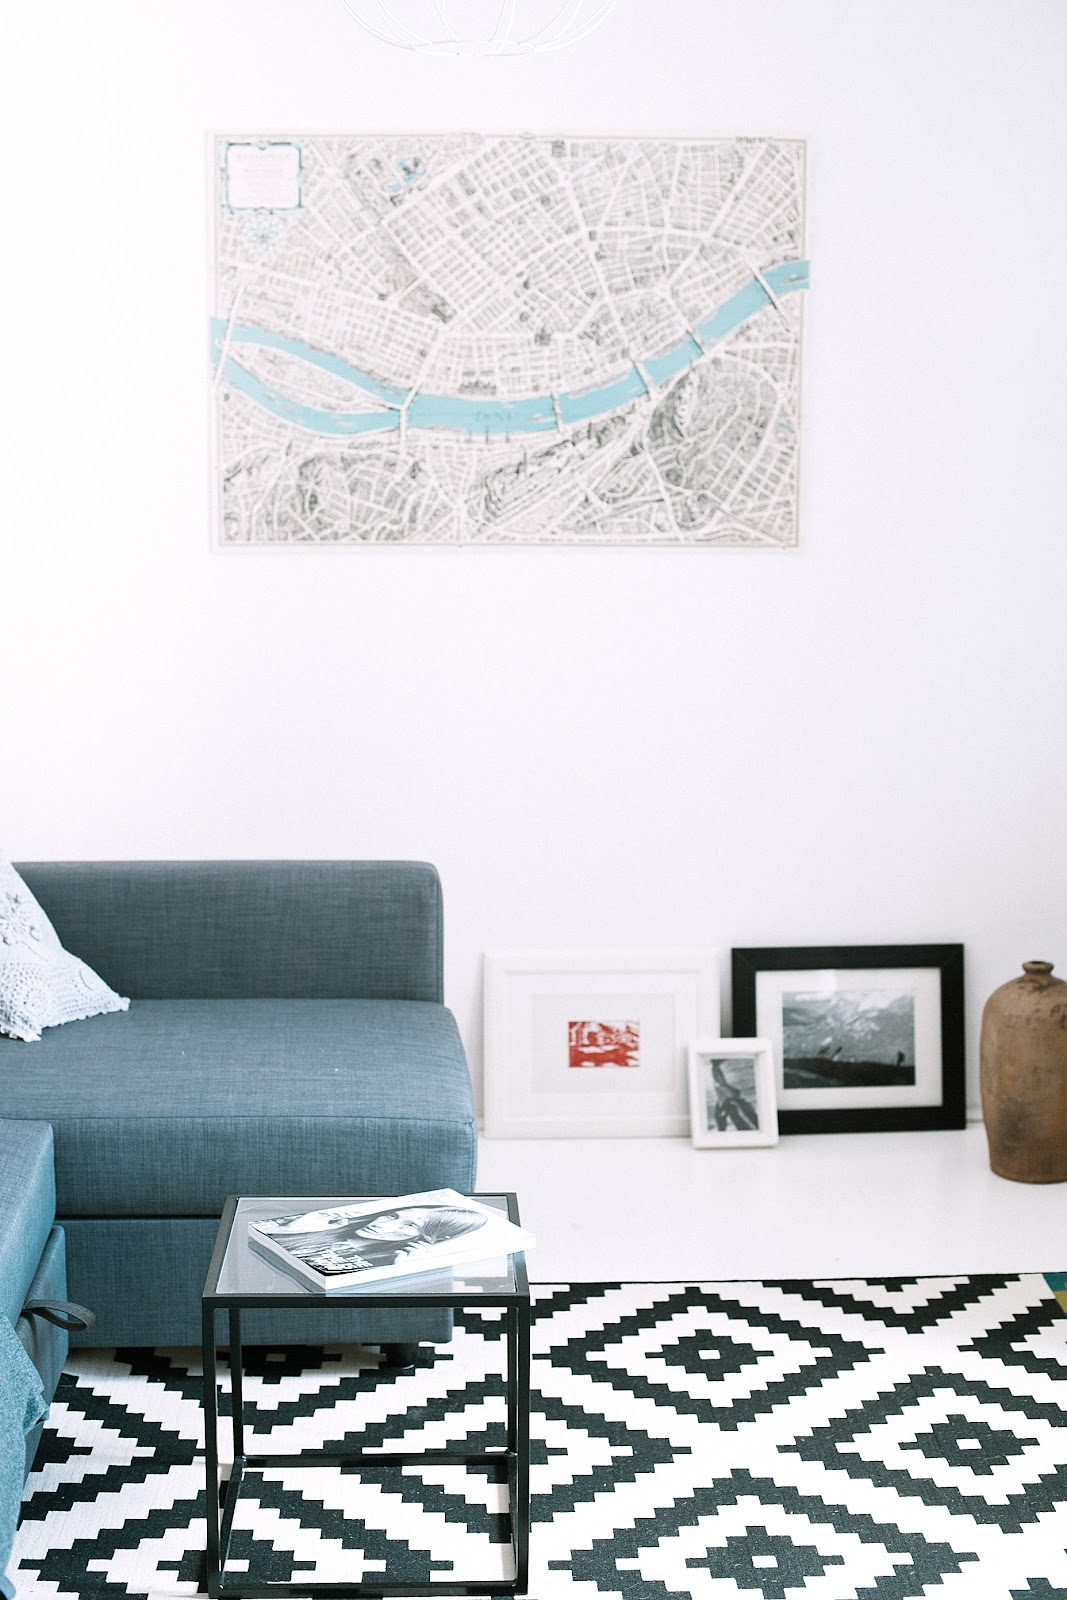 condo interior design with a map sketch hung on the white wall and blue couch and white and black pattered carpet on the floor of a condo unit